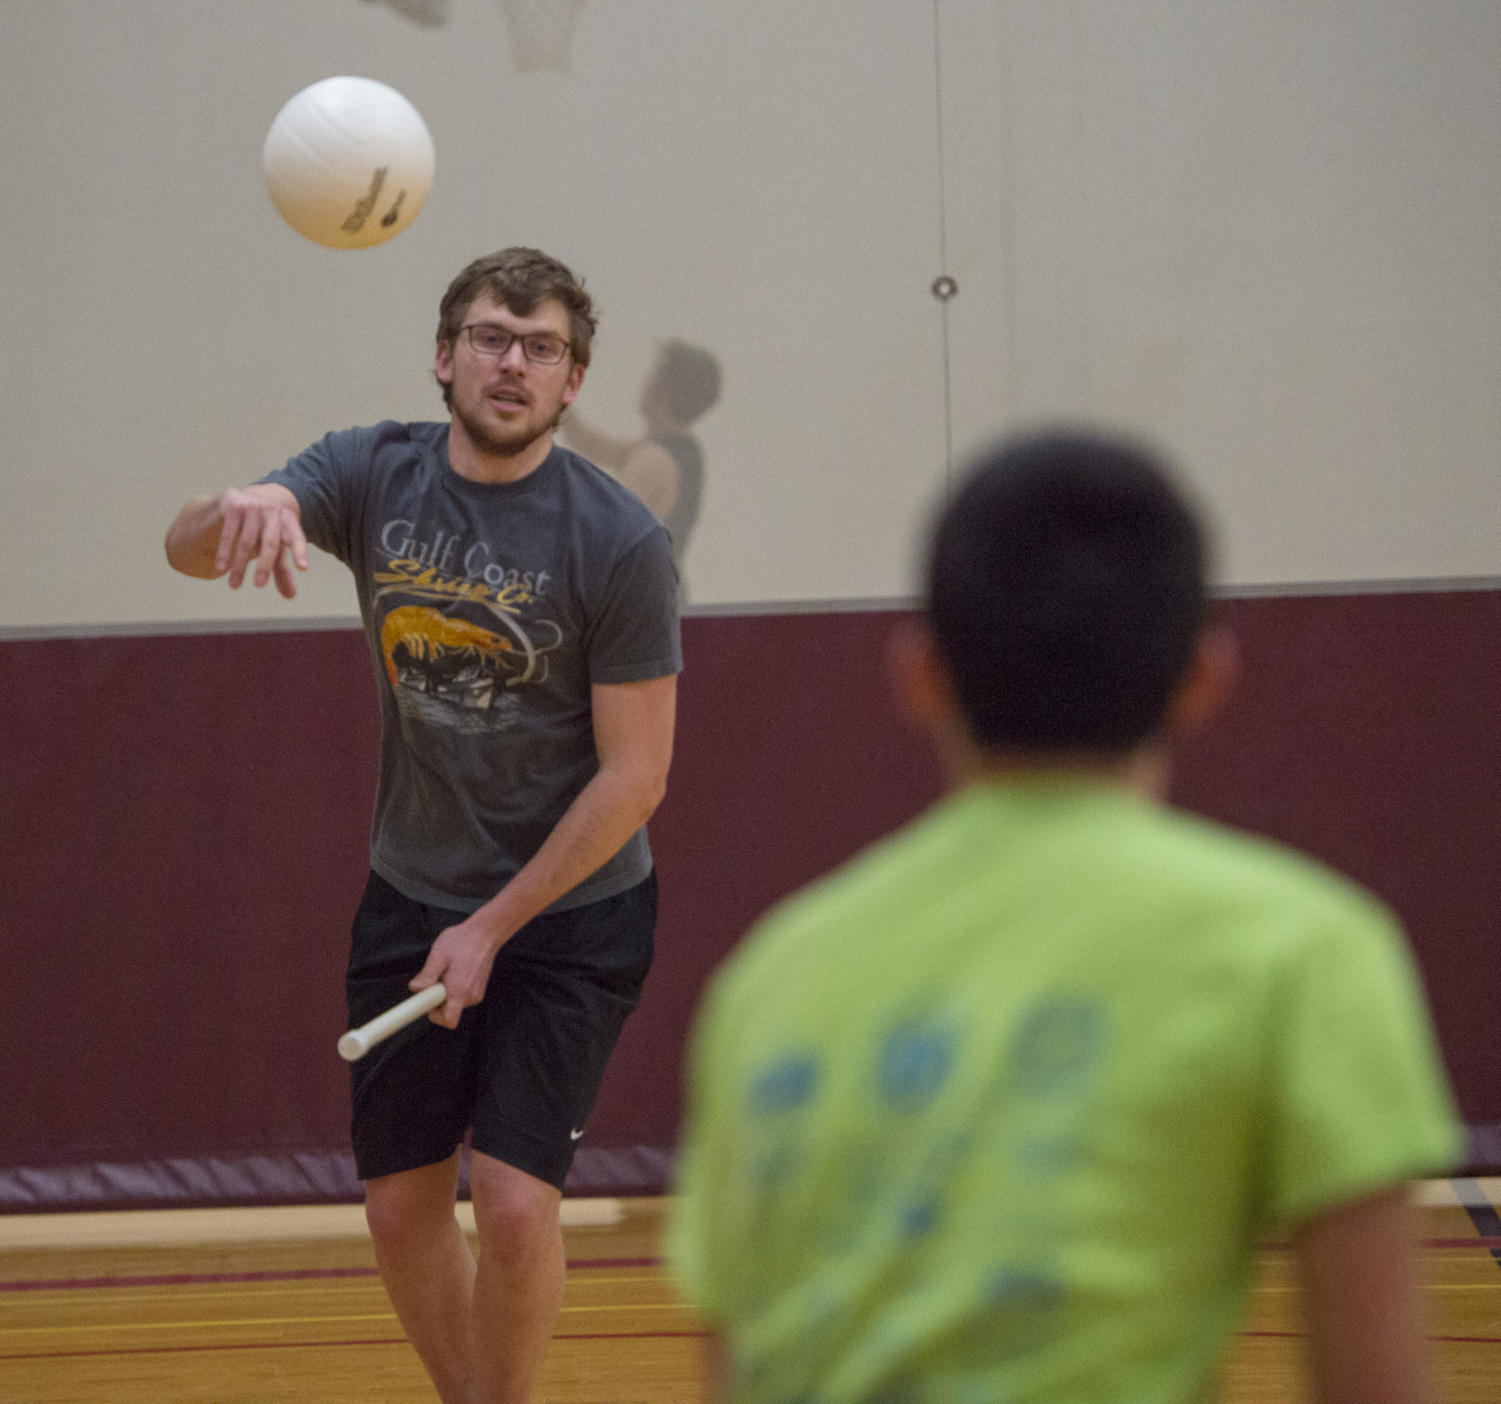 Junior Mechanical Engineering major Matthew Lunde, 20, passes the ball to his teammateMonday, Jan. 29, 2018 during quidditch practice at the student recreation center in Carbondale. (Dylan Nelson | @Dylan_Nelson99)